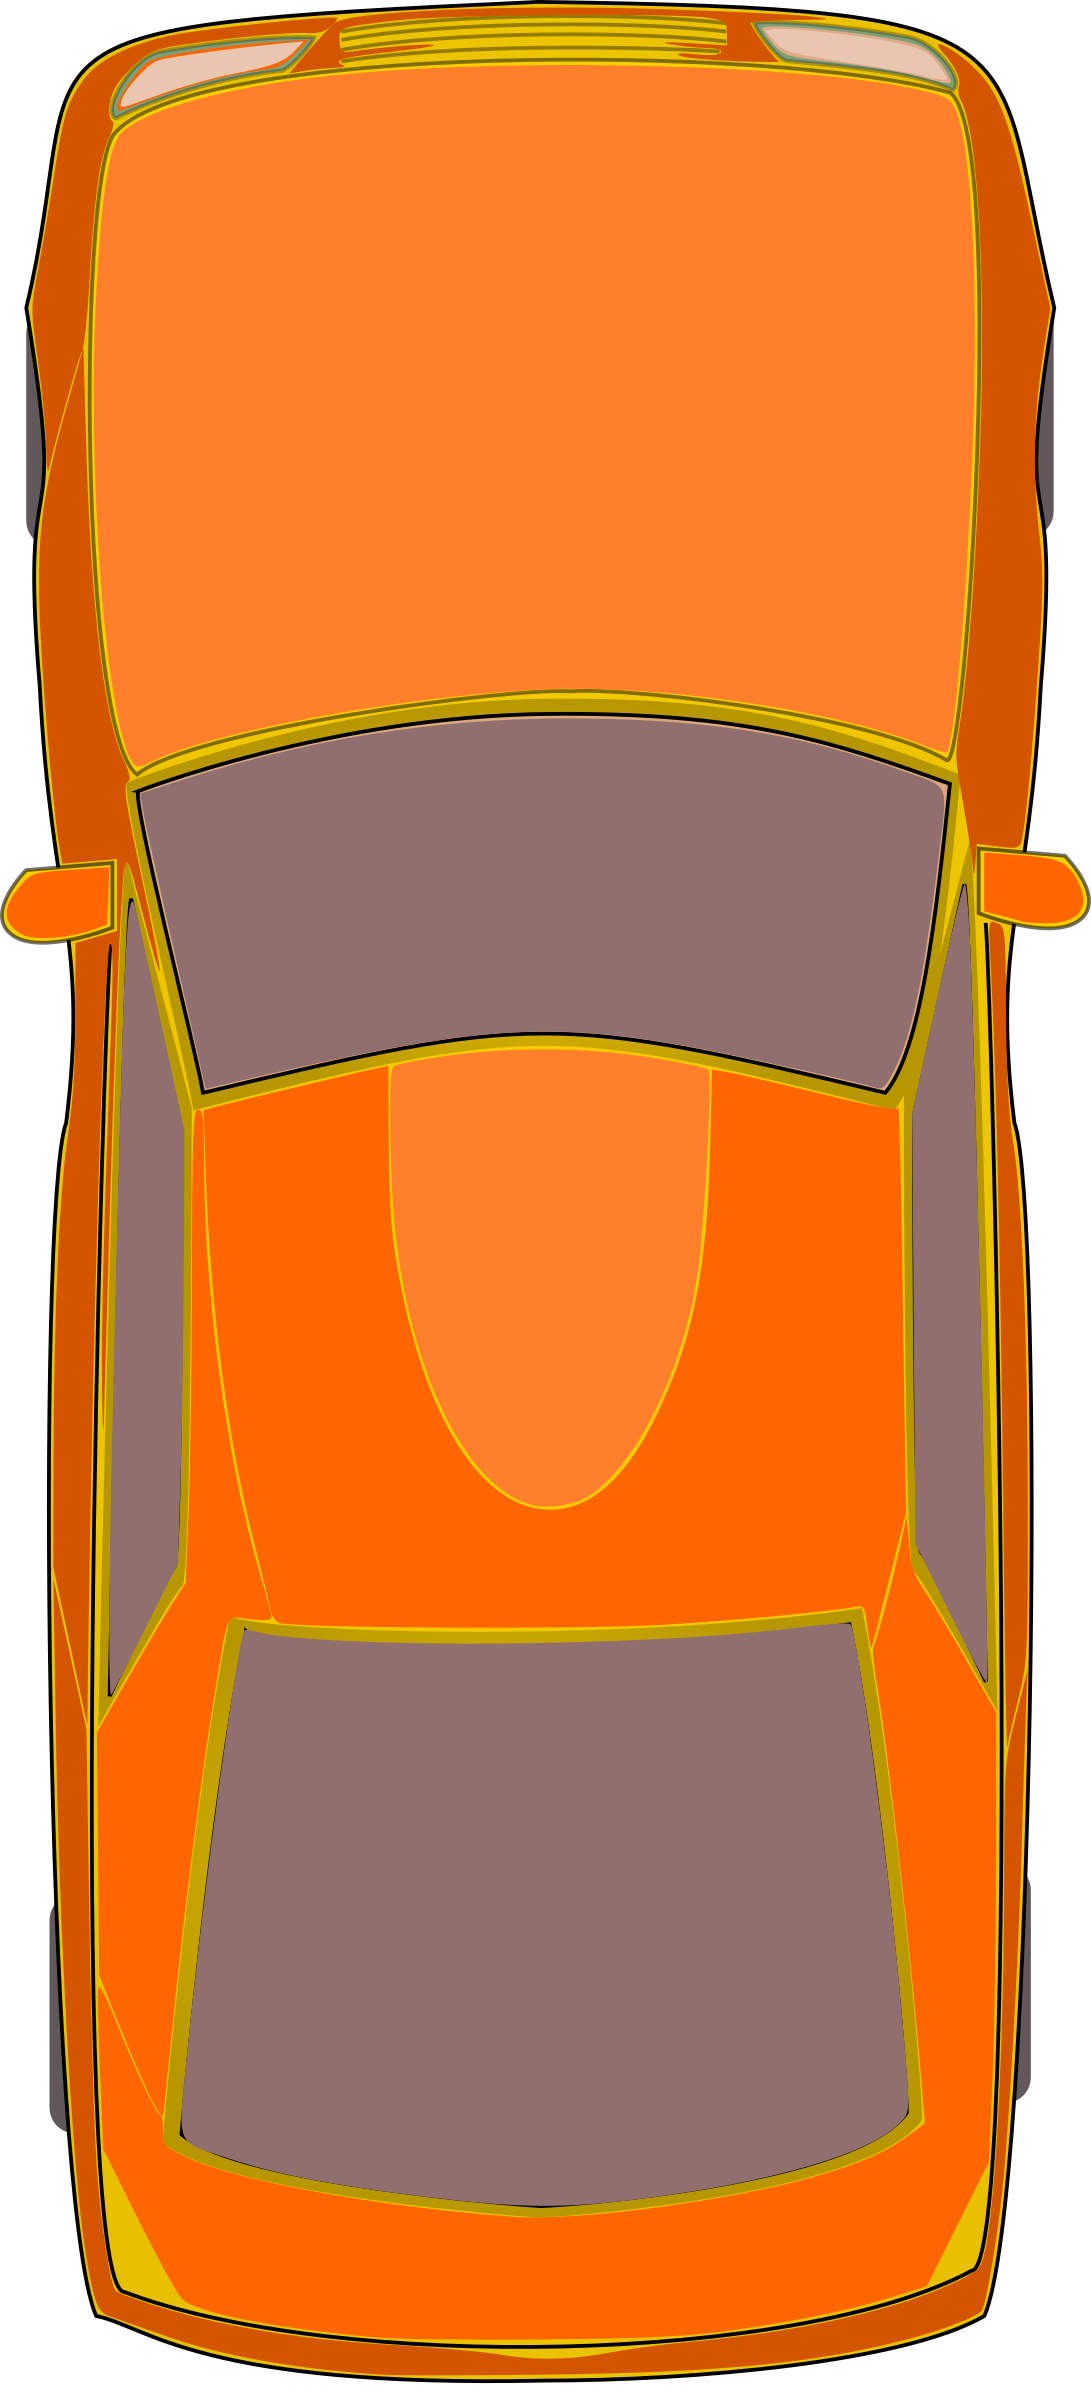 Car keys clipart graphic royalty free download Clipart - Orange Car (Top View) graphic royalty free download